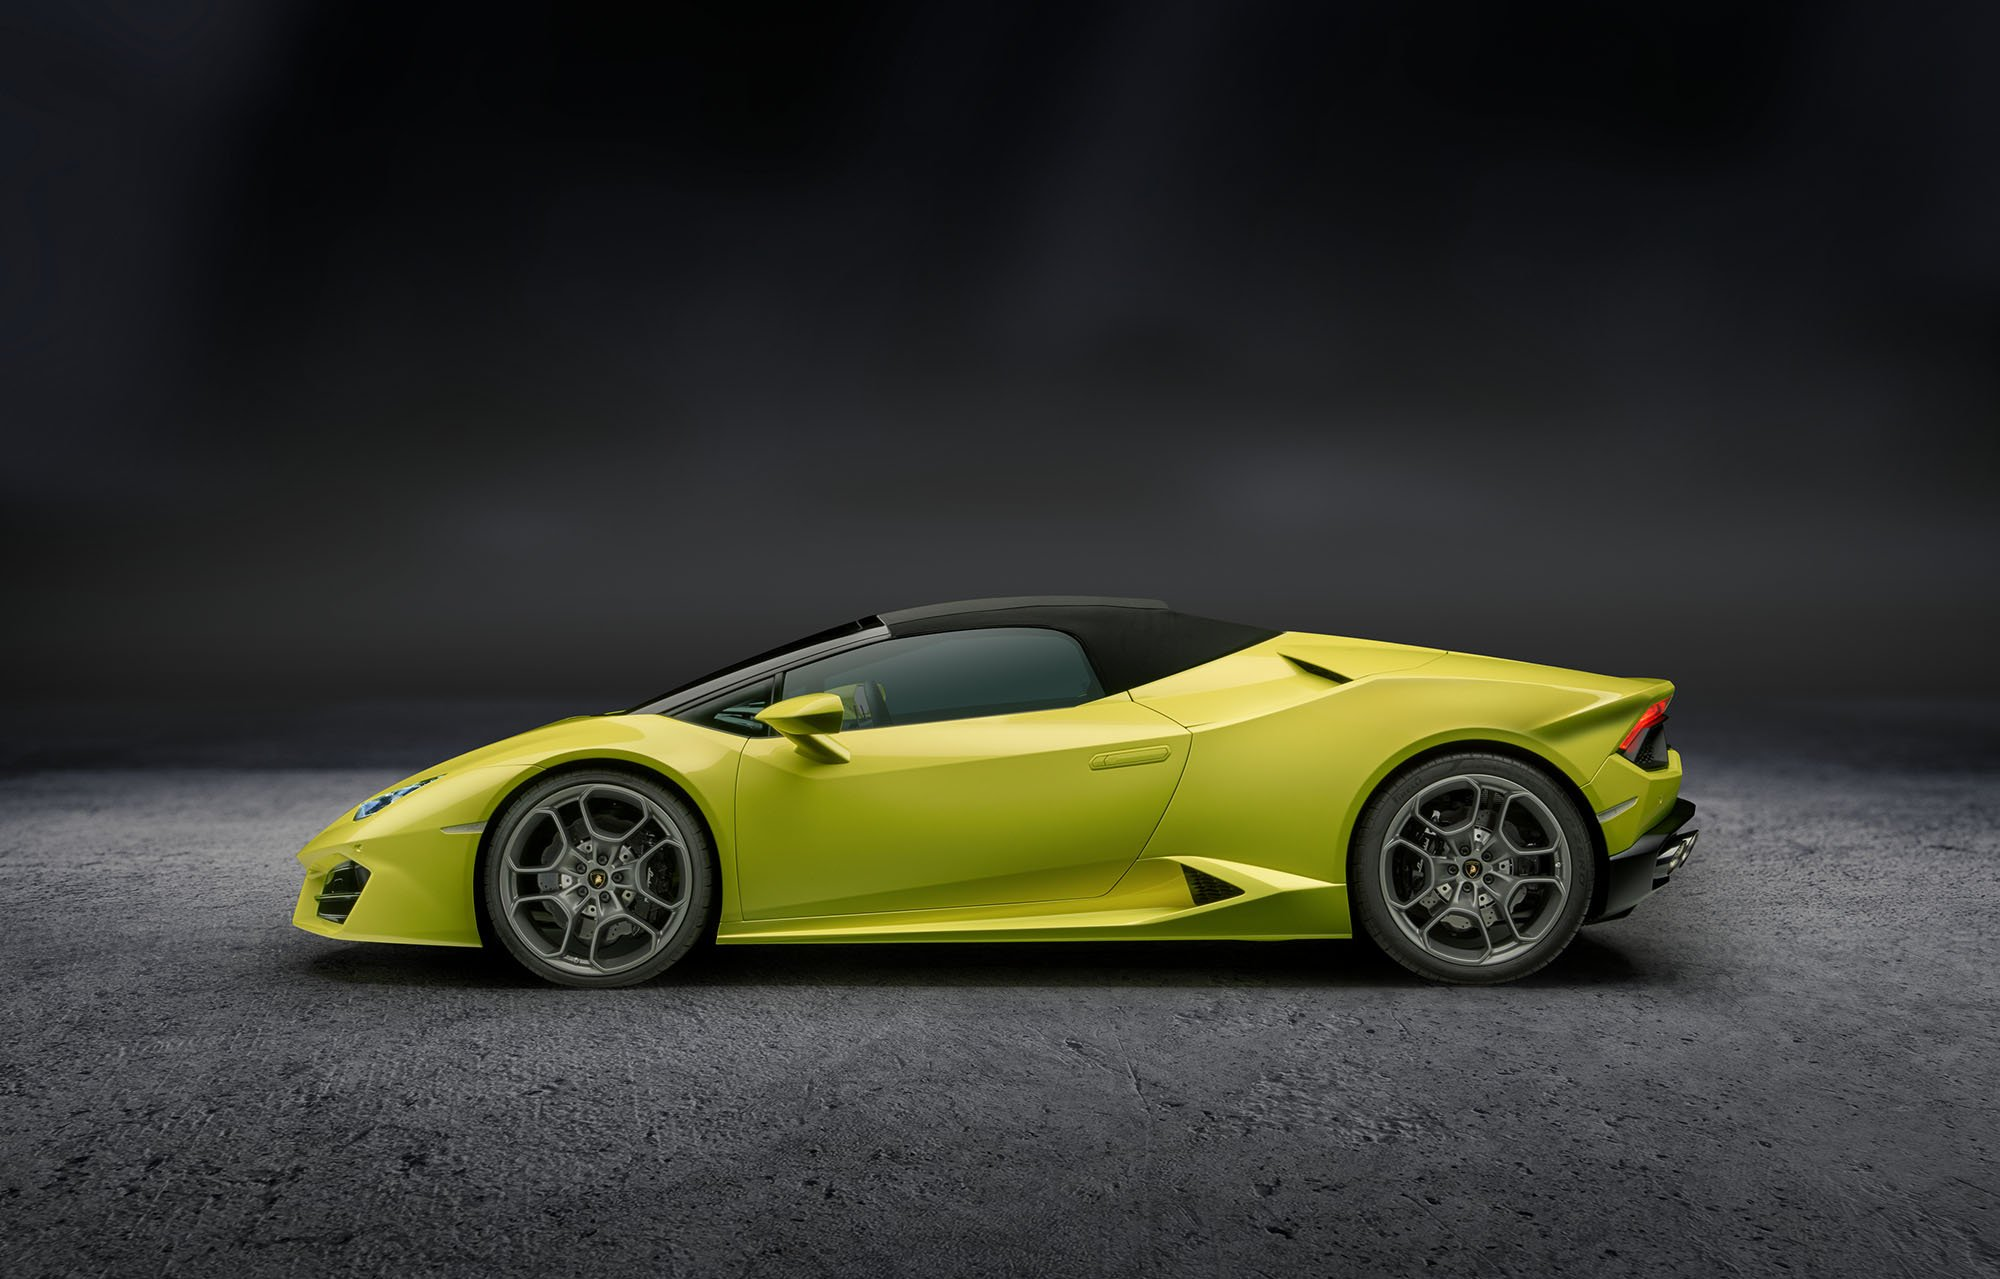 2017 lamborghini huracan rear wheel drive spyder revealed on sale in australia photos 1 of 8. Black Bedroom Furniture Sets. Home Design Ideas